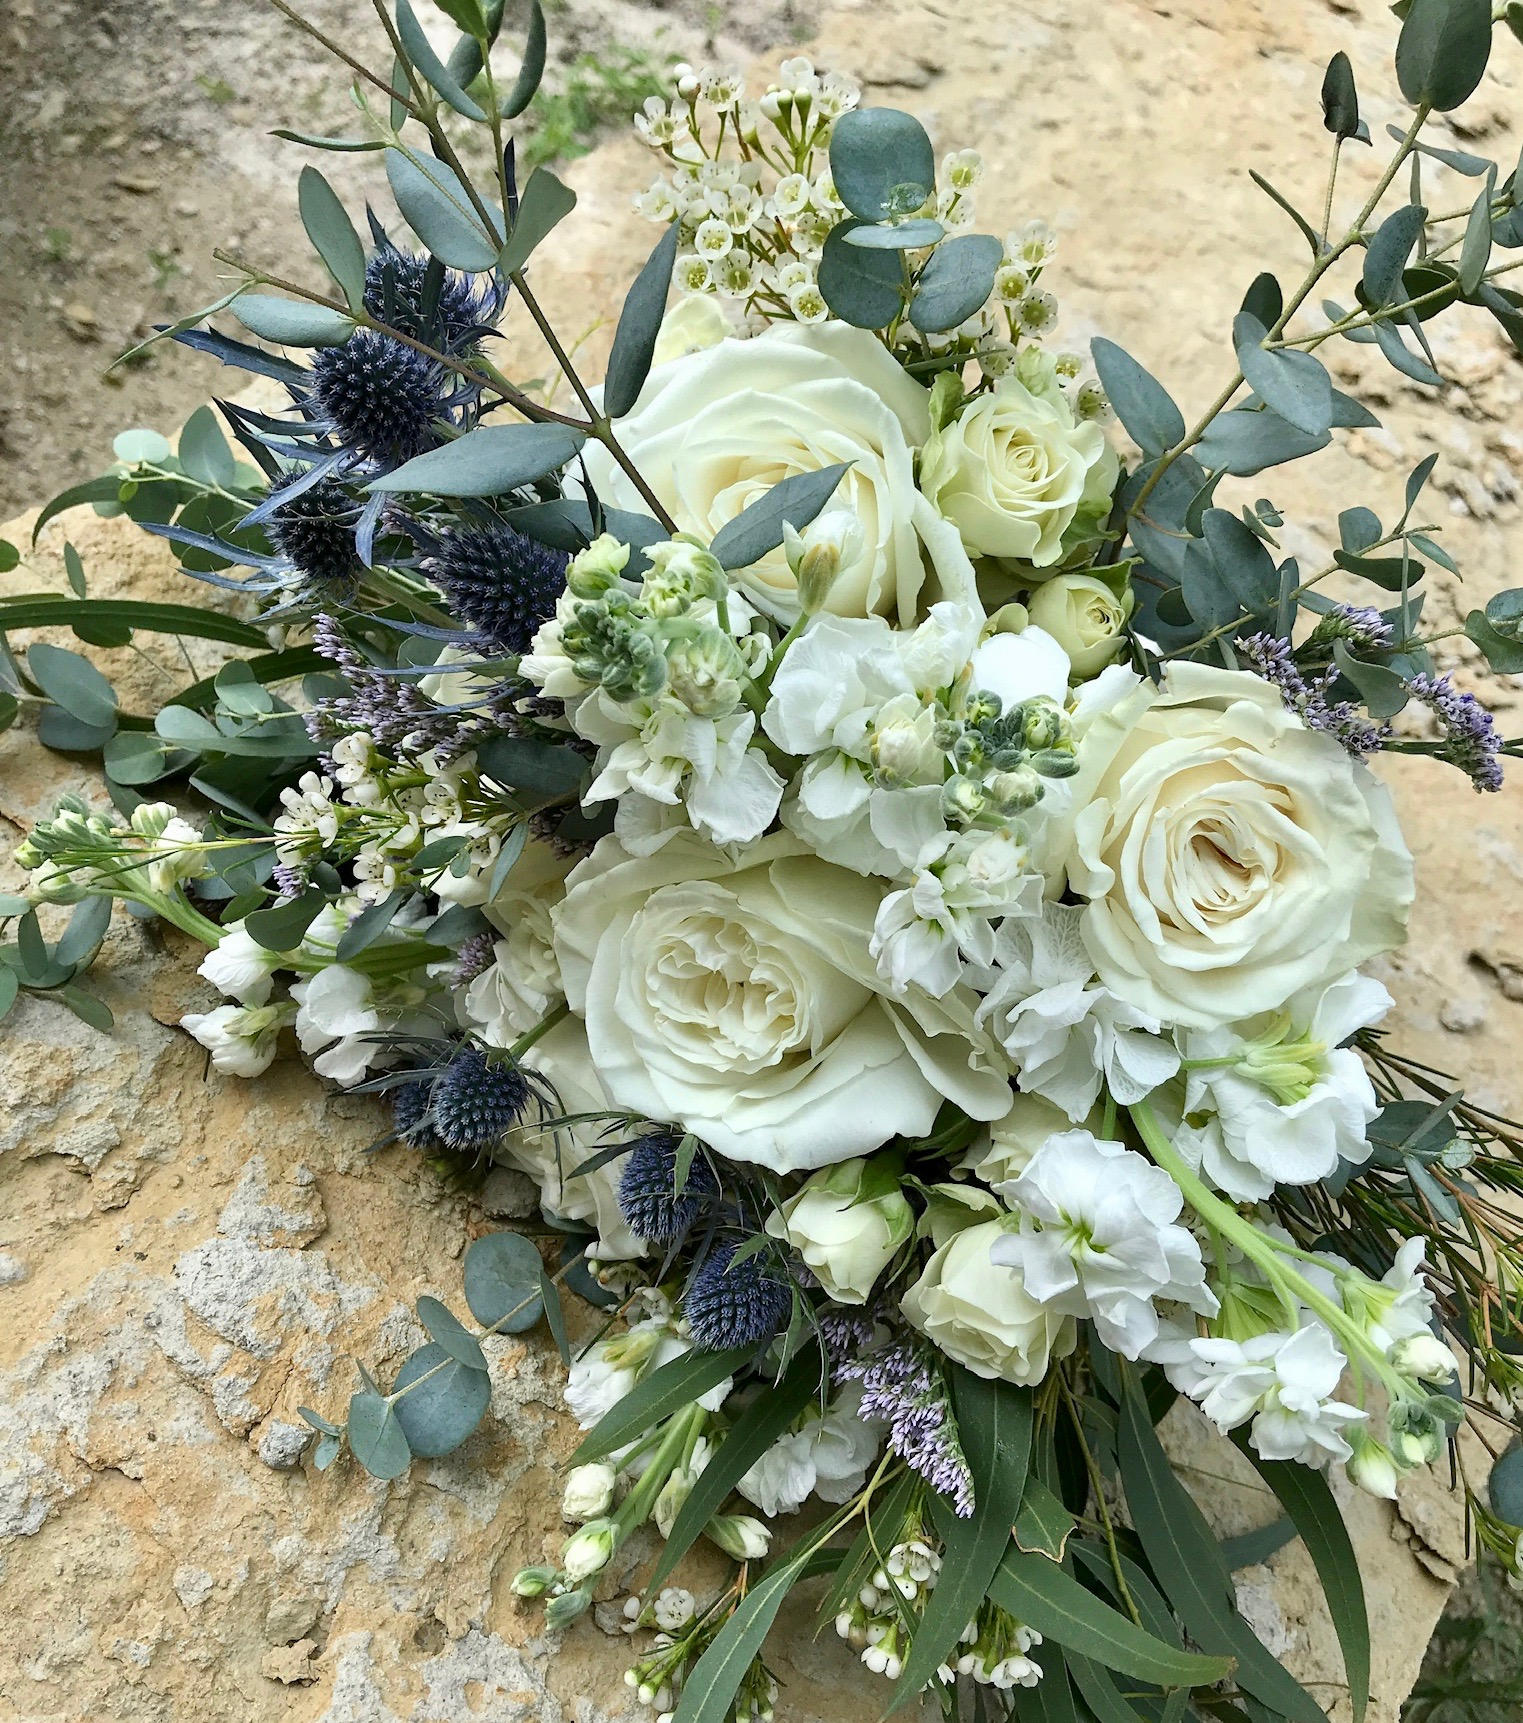 A close up of the Bride's Bouquet